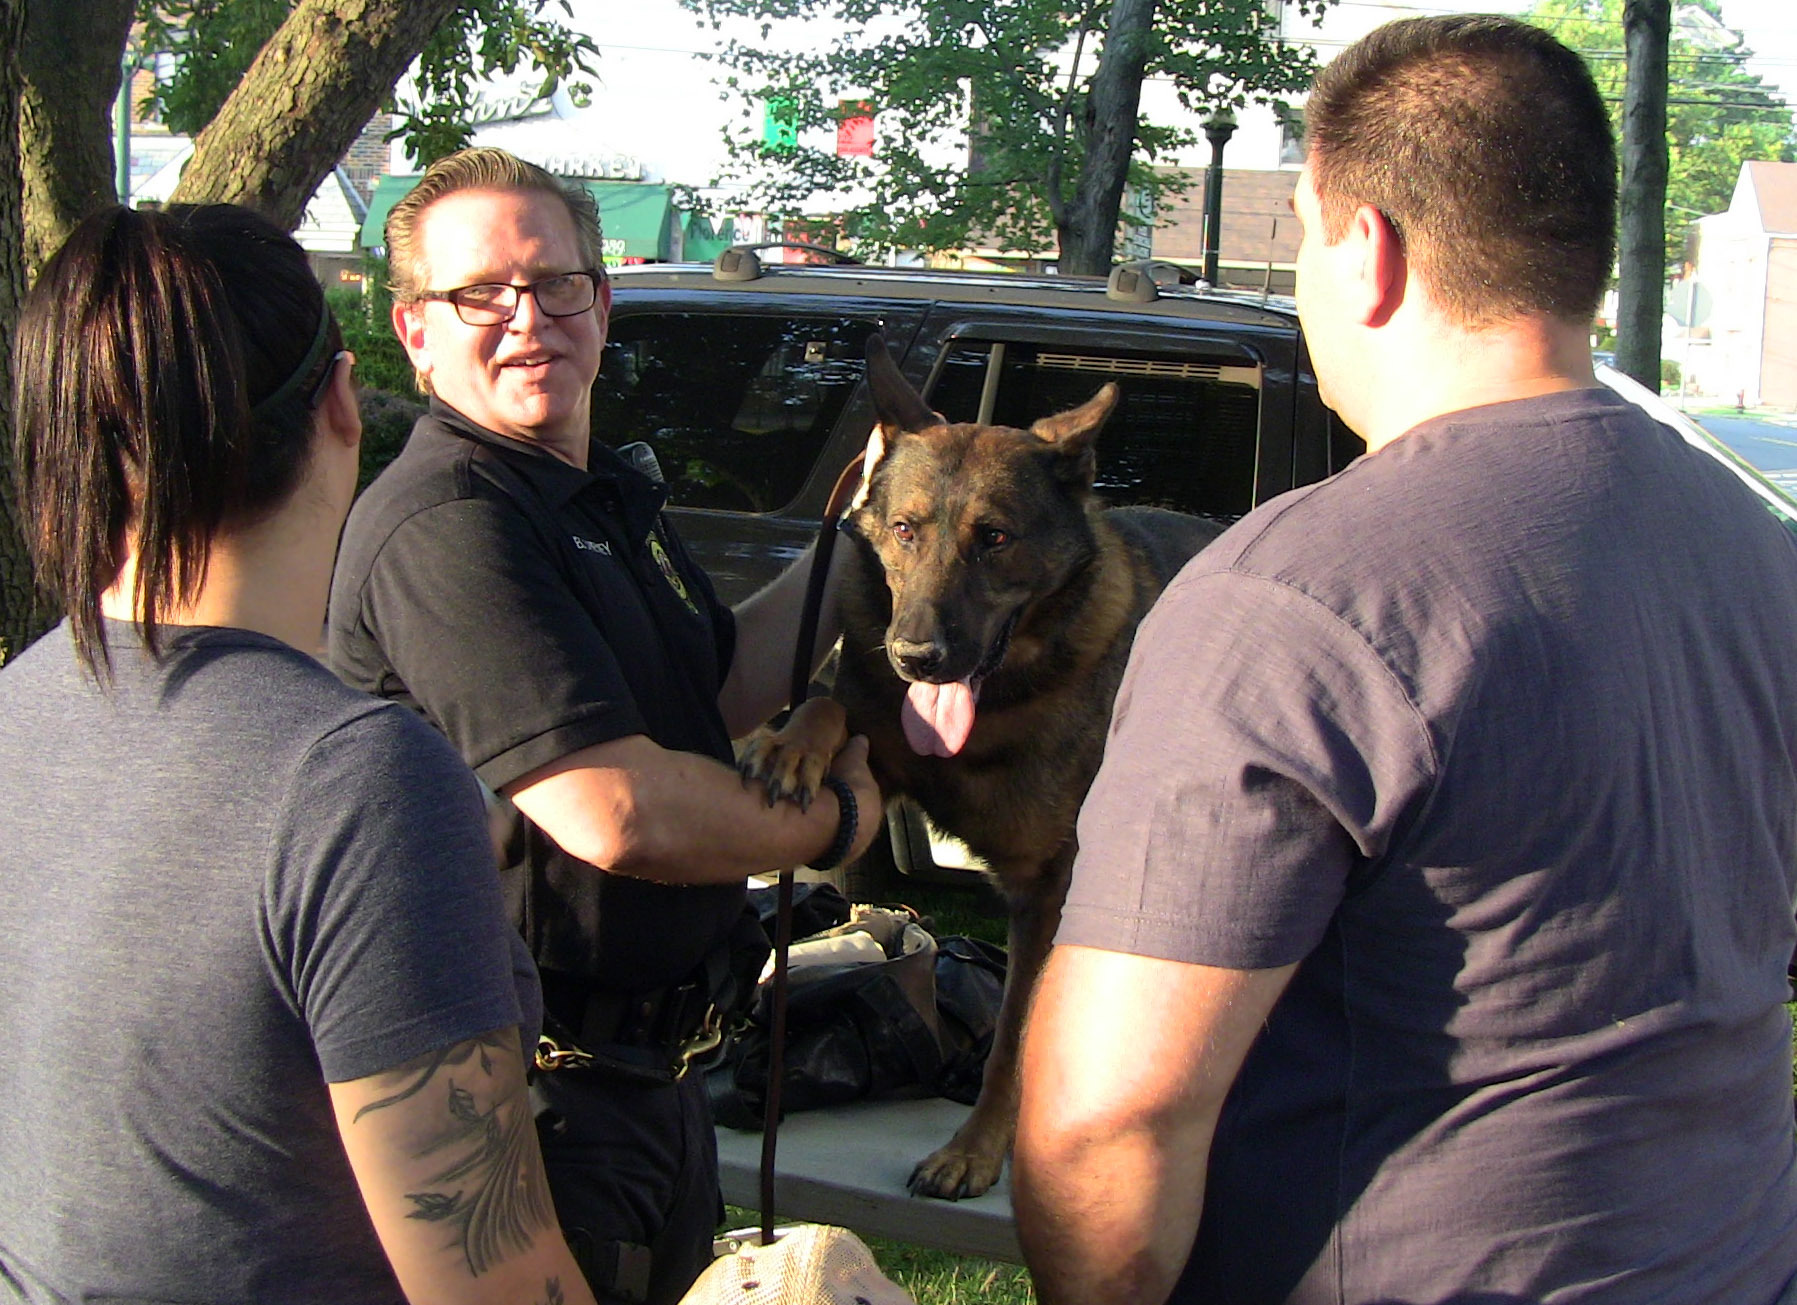 56f0cc205d7ec041e9ed_Brian_Cheney_and_K-9_unit.jpg